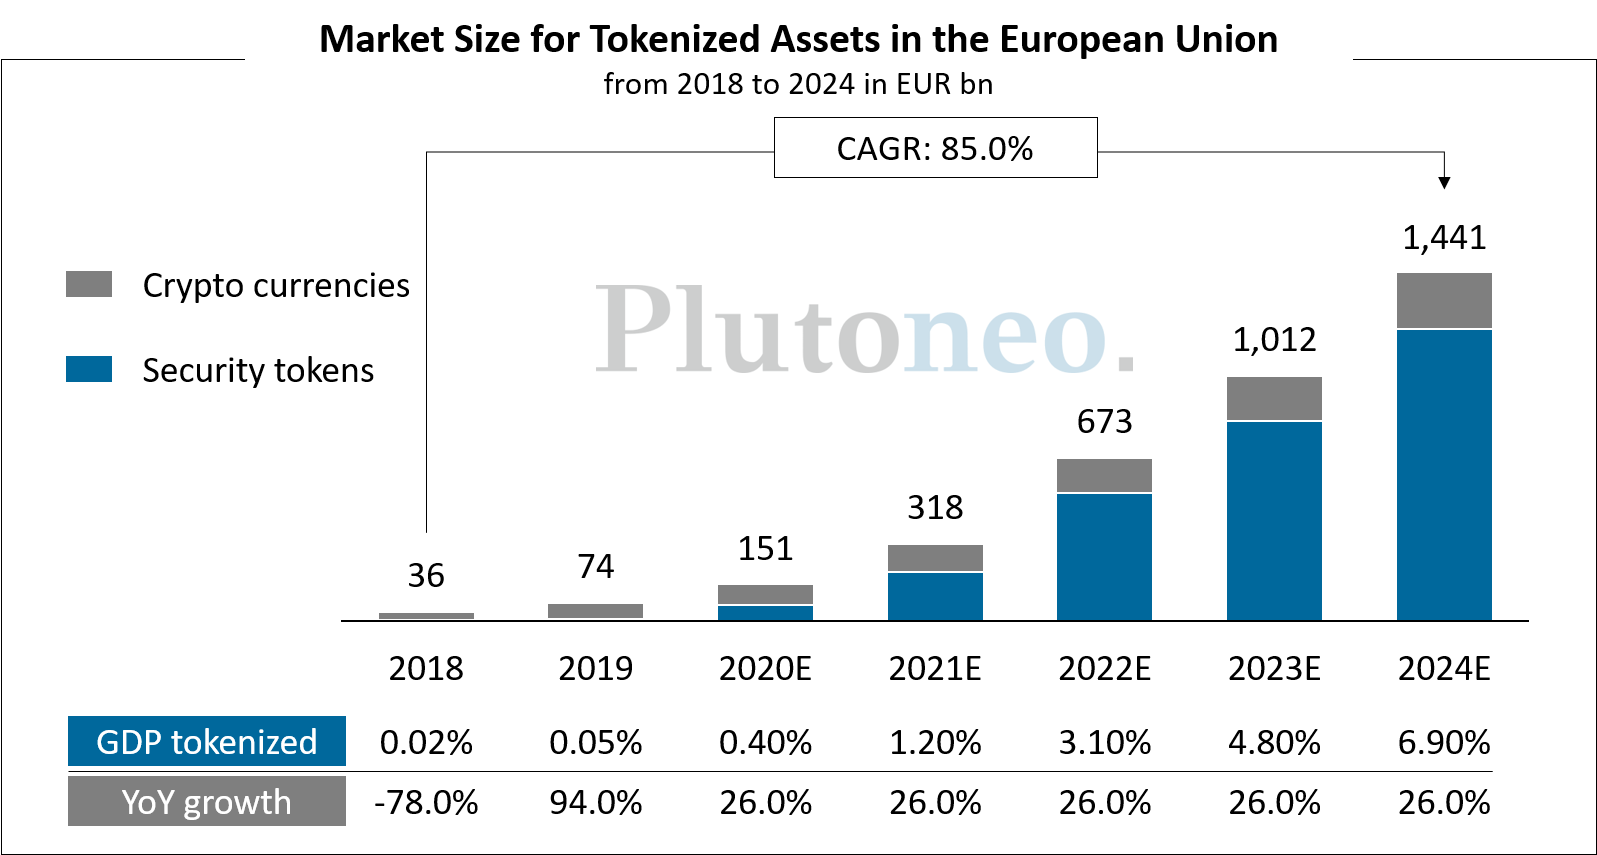 Market Size for Tokenized Assets in the European Union